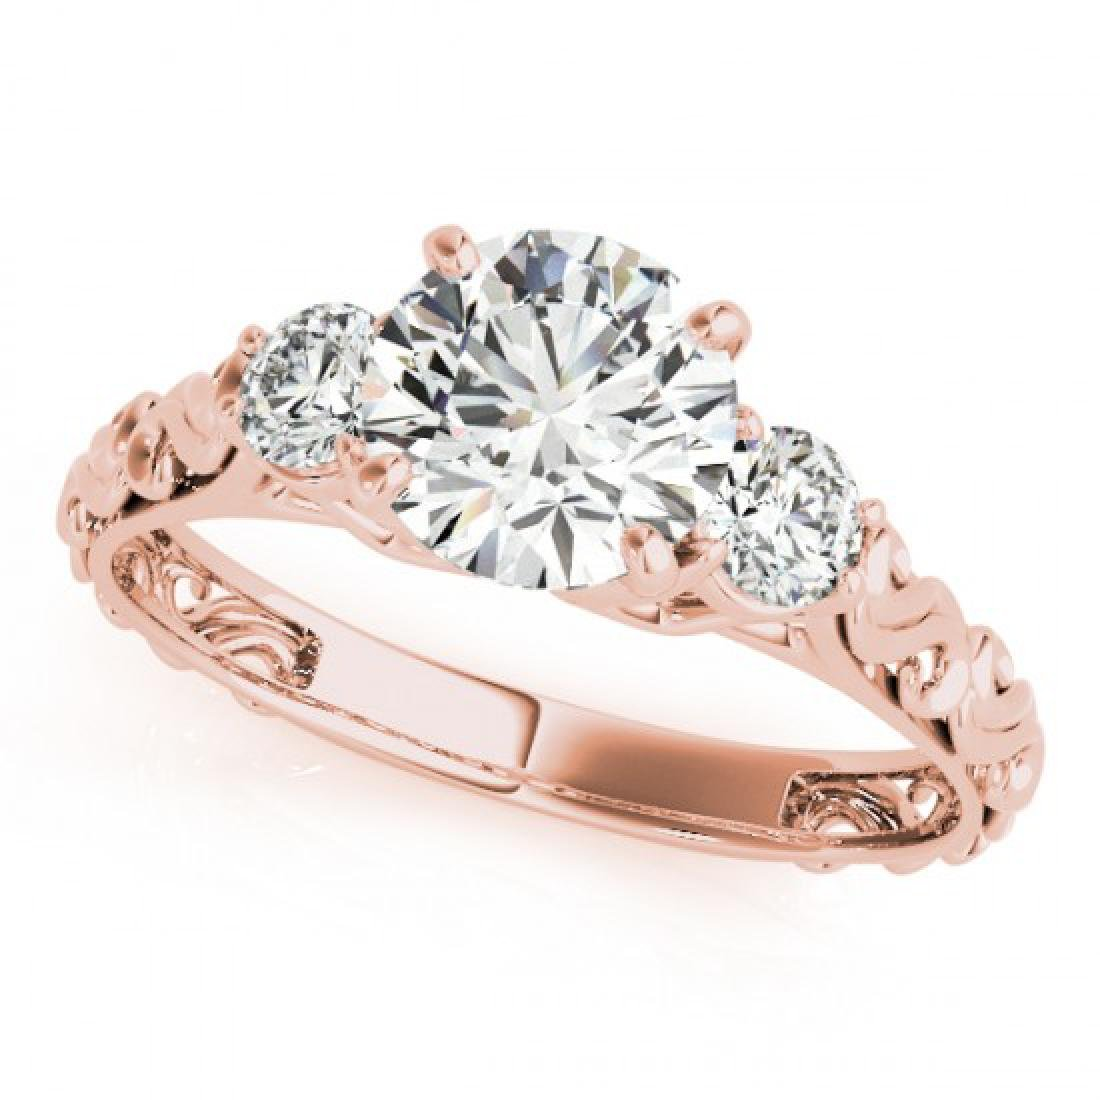 1.25 CTW Certified VS/SI Diamond 3 Stone Ring 14K Rose